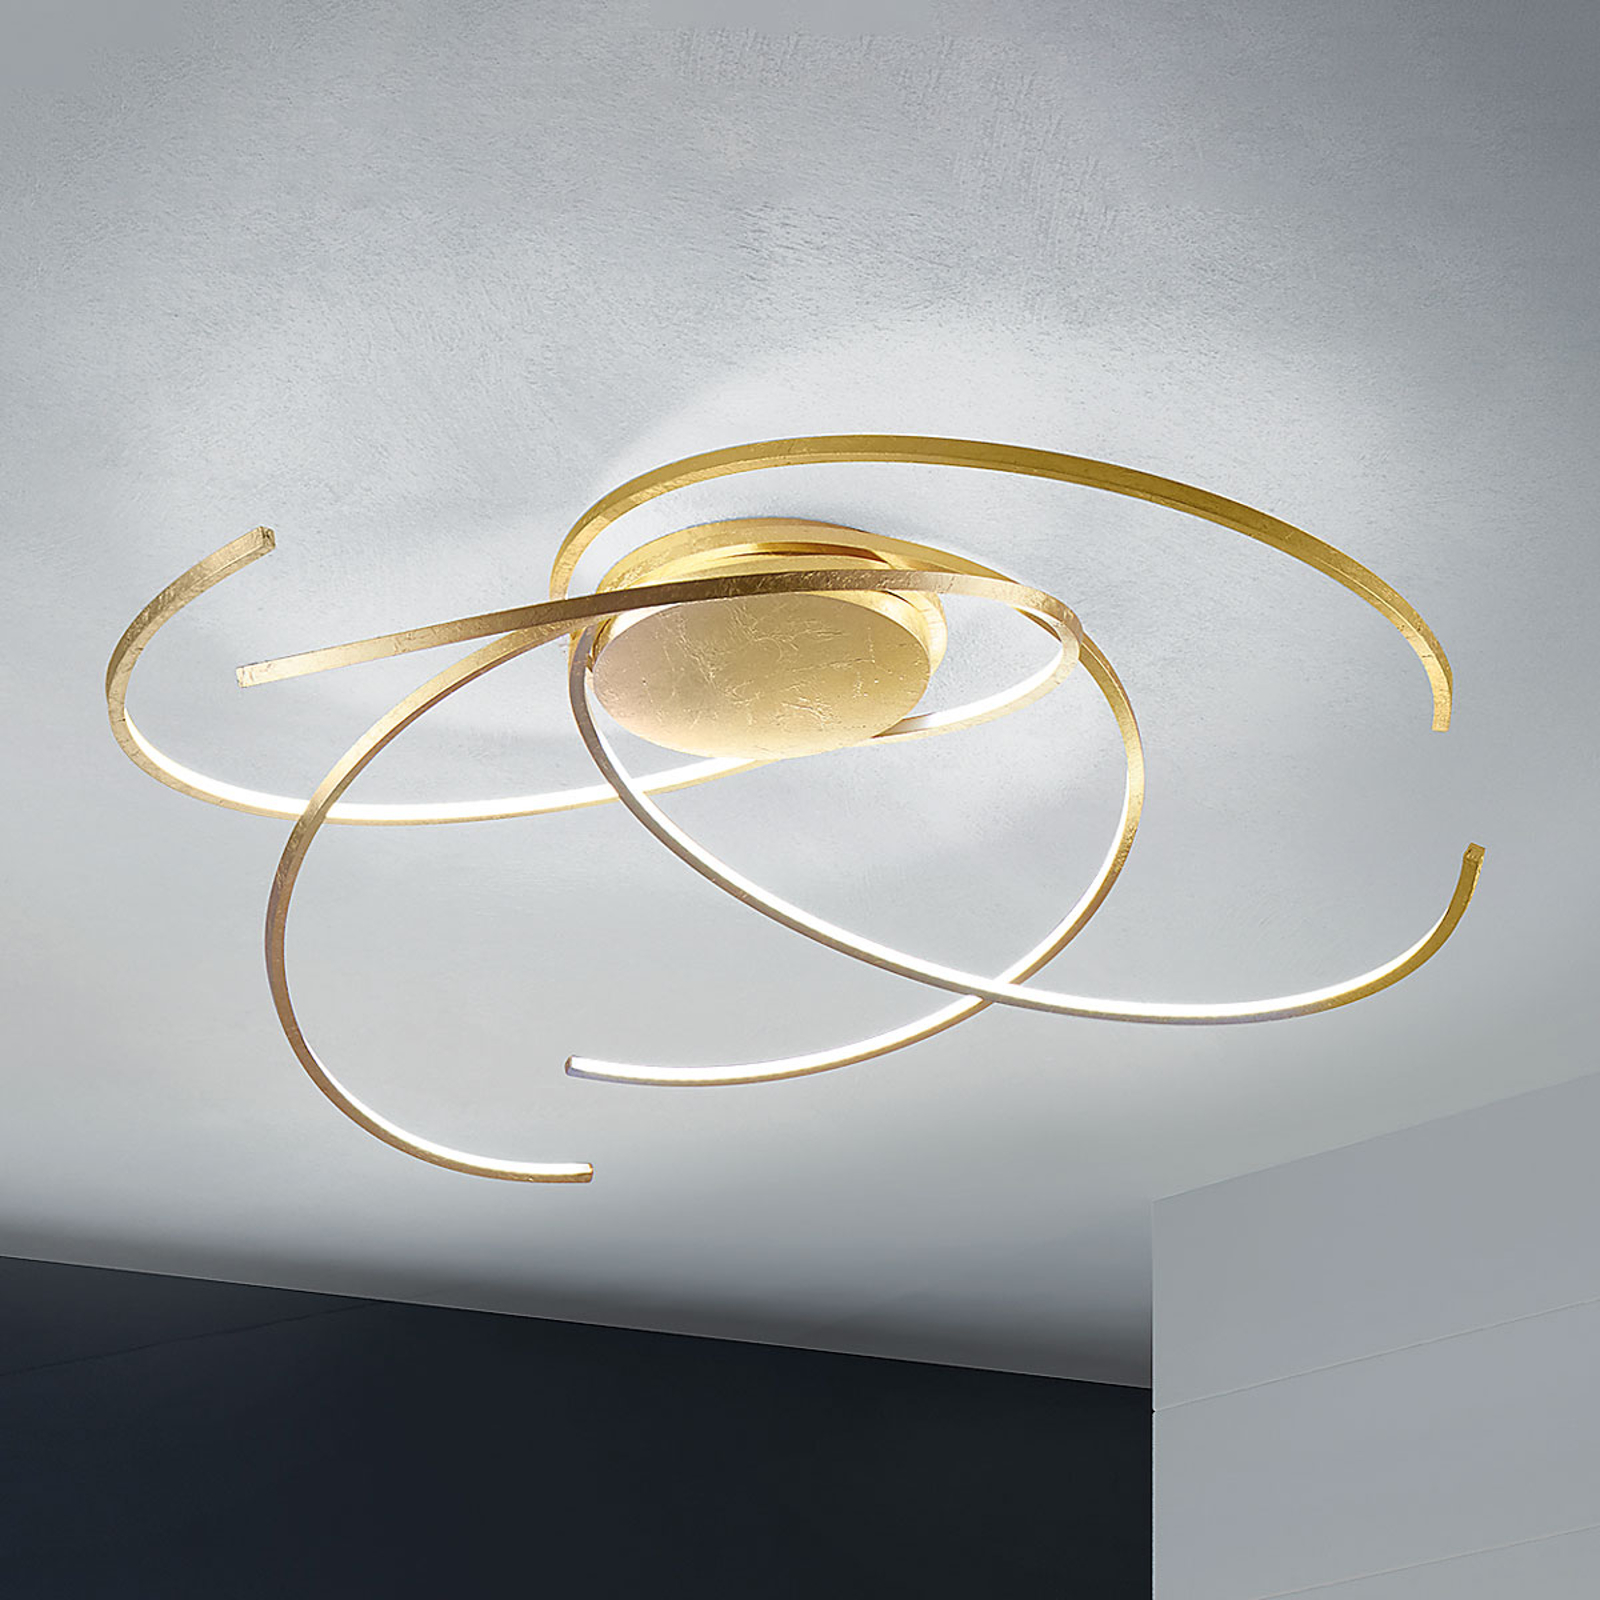 Escale Space - LED-taklampa, 80 cm, bladguld